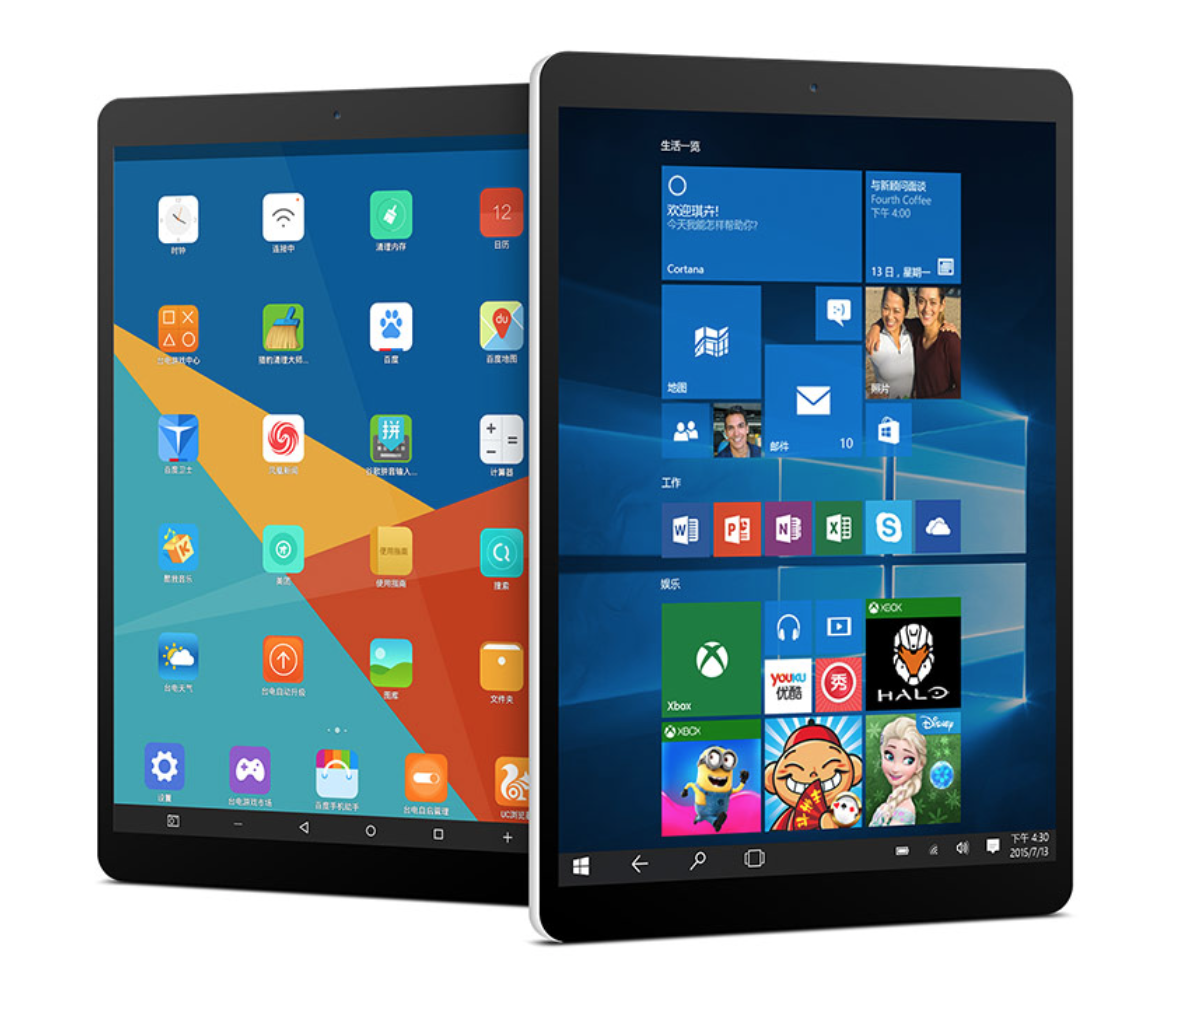 Teclast X89 Kindow E-book Reader 7.5 inch Dual OS Windows 10 & Android 4.4Intel Bay Trail Z3735F 2G + 32G Quad Core Tablet PC